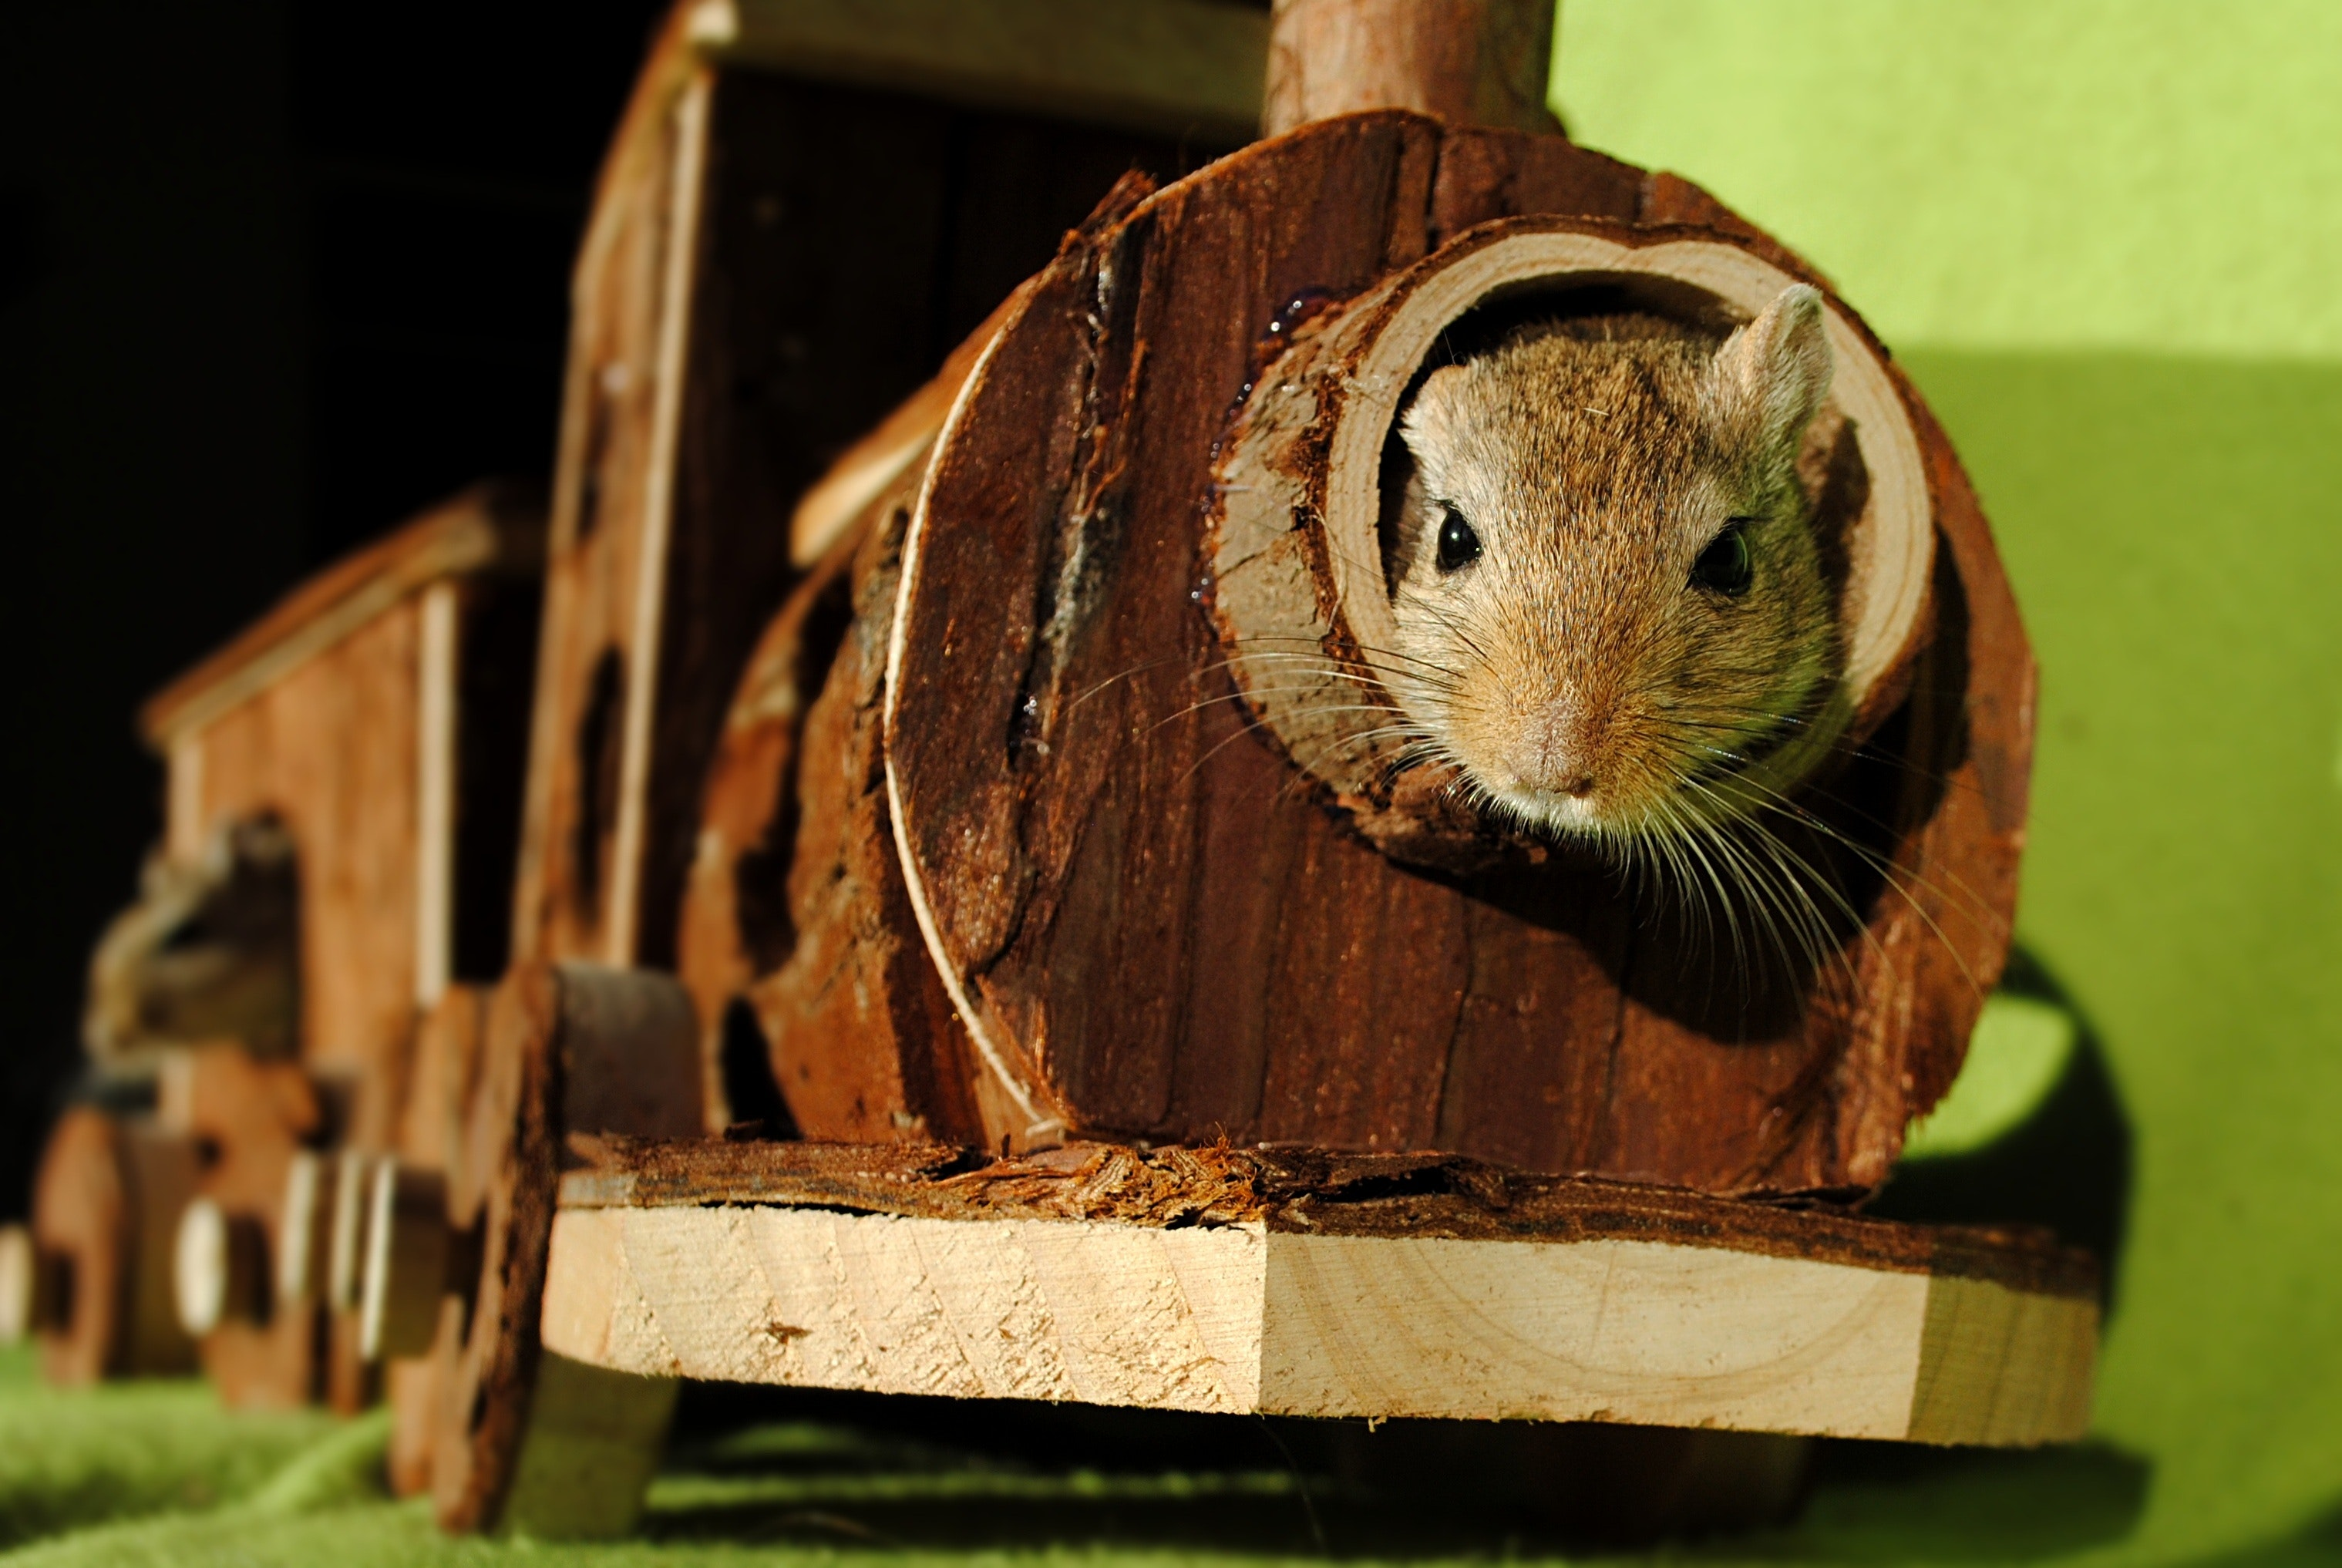 Brown Squirrel Inside of Brown Wooden Train Miniature, Animal, Portrait, Wood, Wildlife, HQ Photo